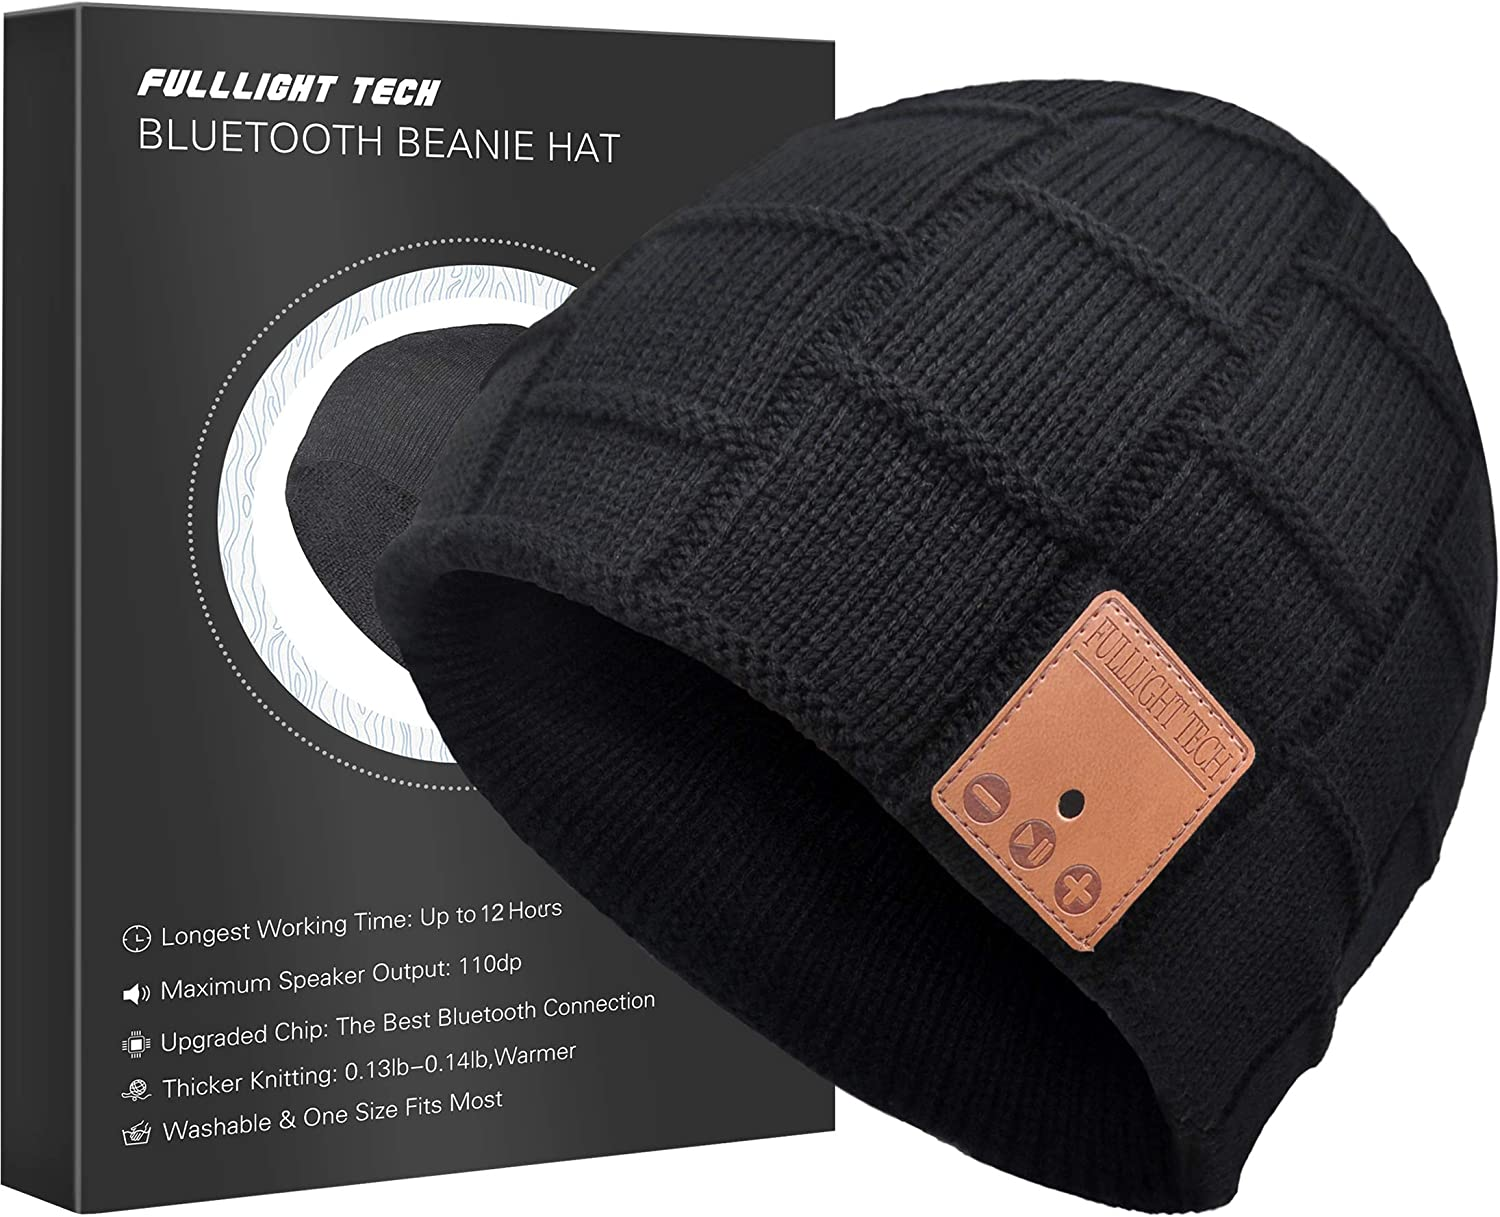 Upgraded Bluetooth Beanie Hat with Headphones Unique Tech Gifts